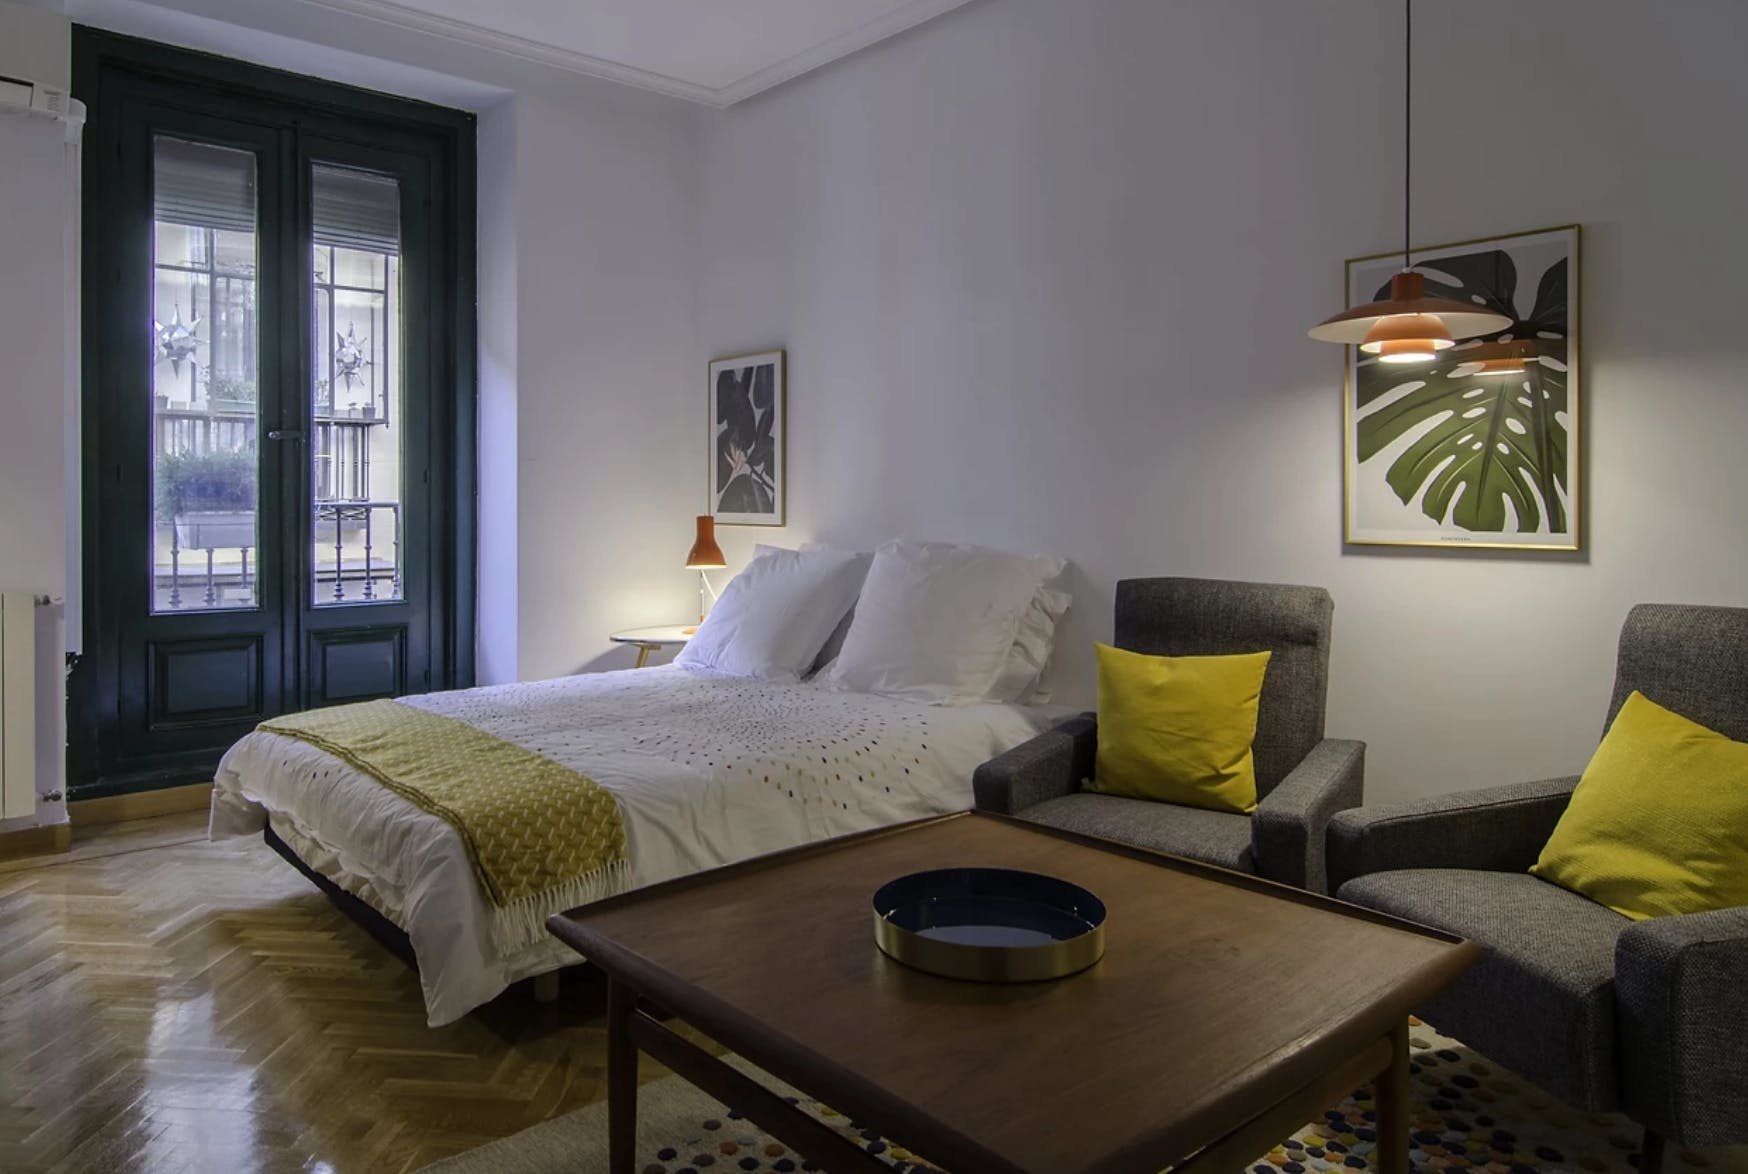 3 Residents | Calle del Barquillo - Justicia | Chic Studio w/ Balcony and Coworking